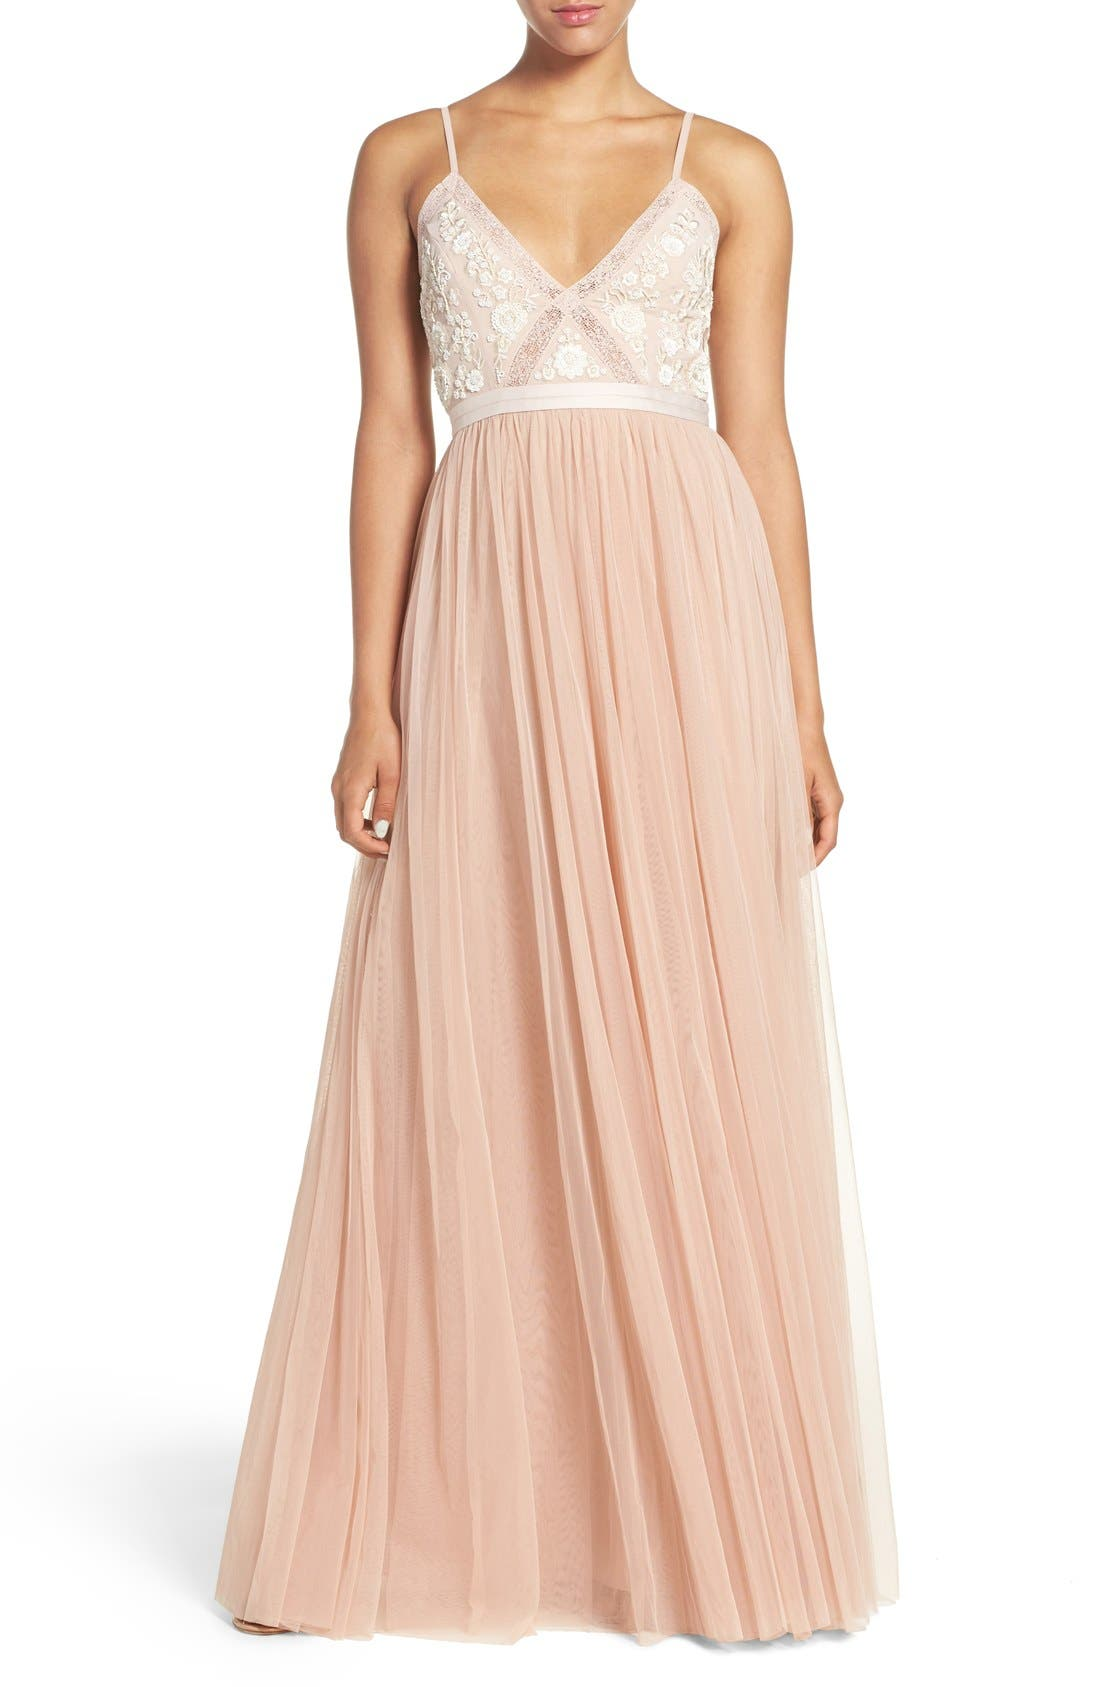 Alternate Image 1 Selected - Needle & Thread Embroidered Bodice Tulle Gown